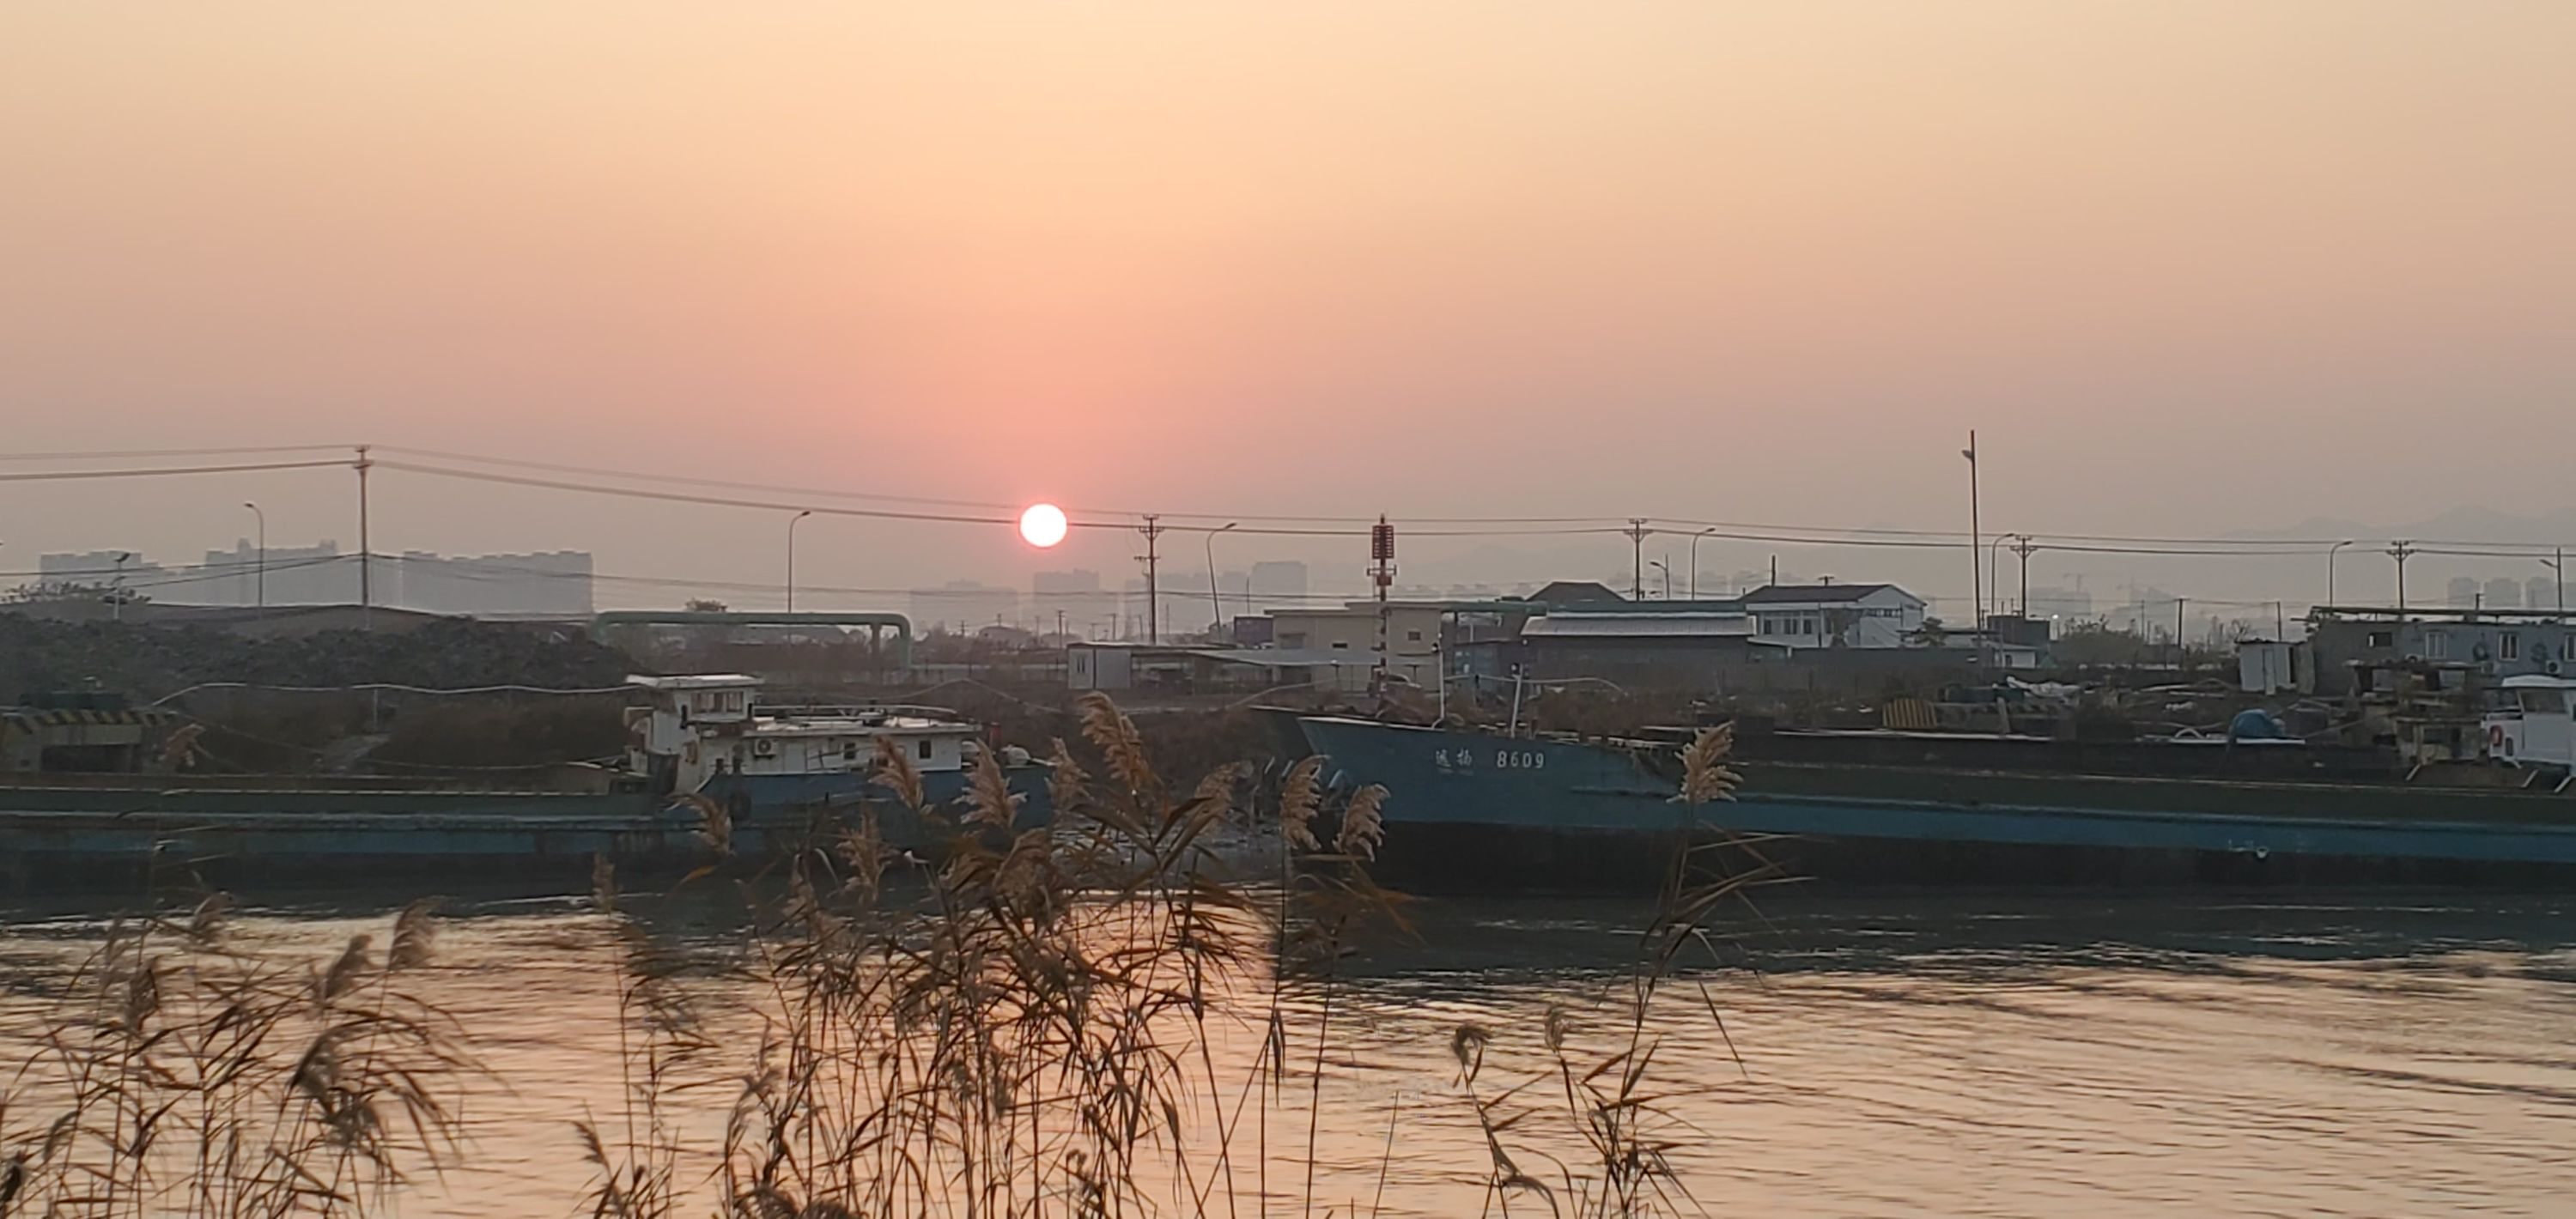 sunrise during 9k run - ningbo